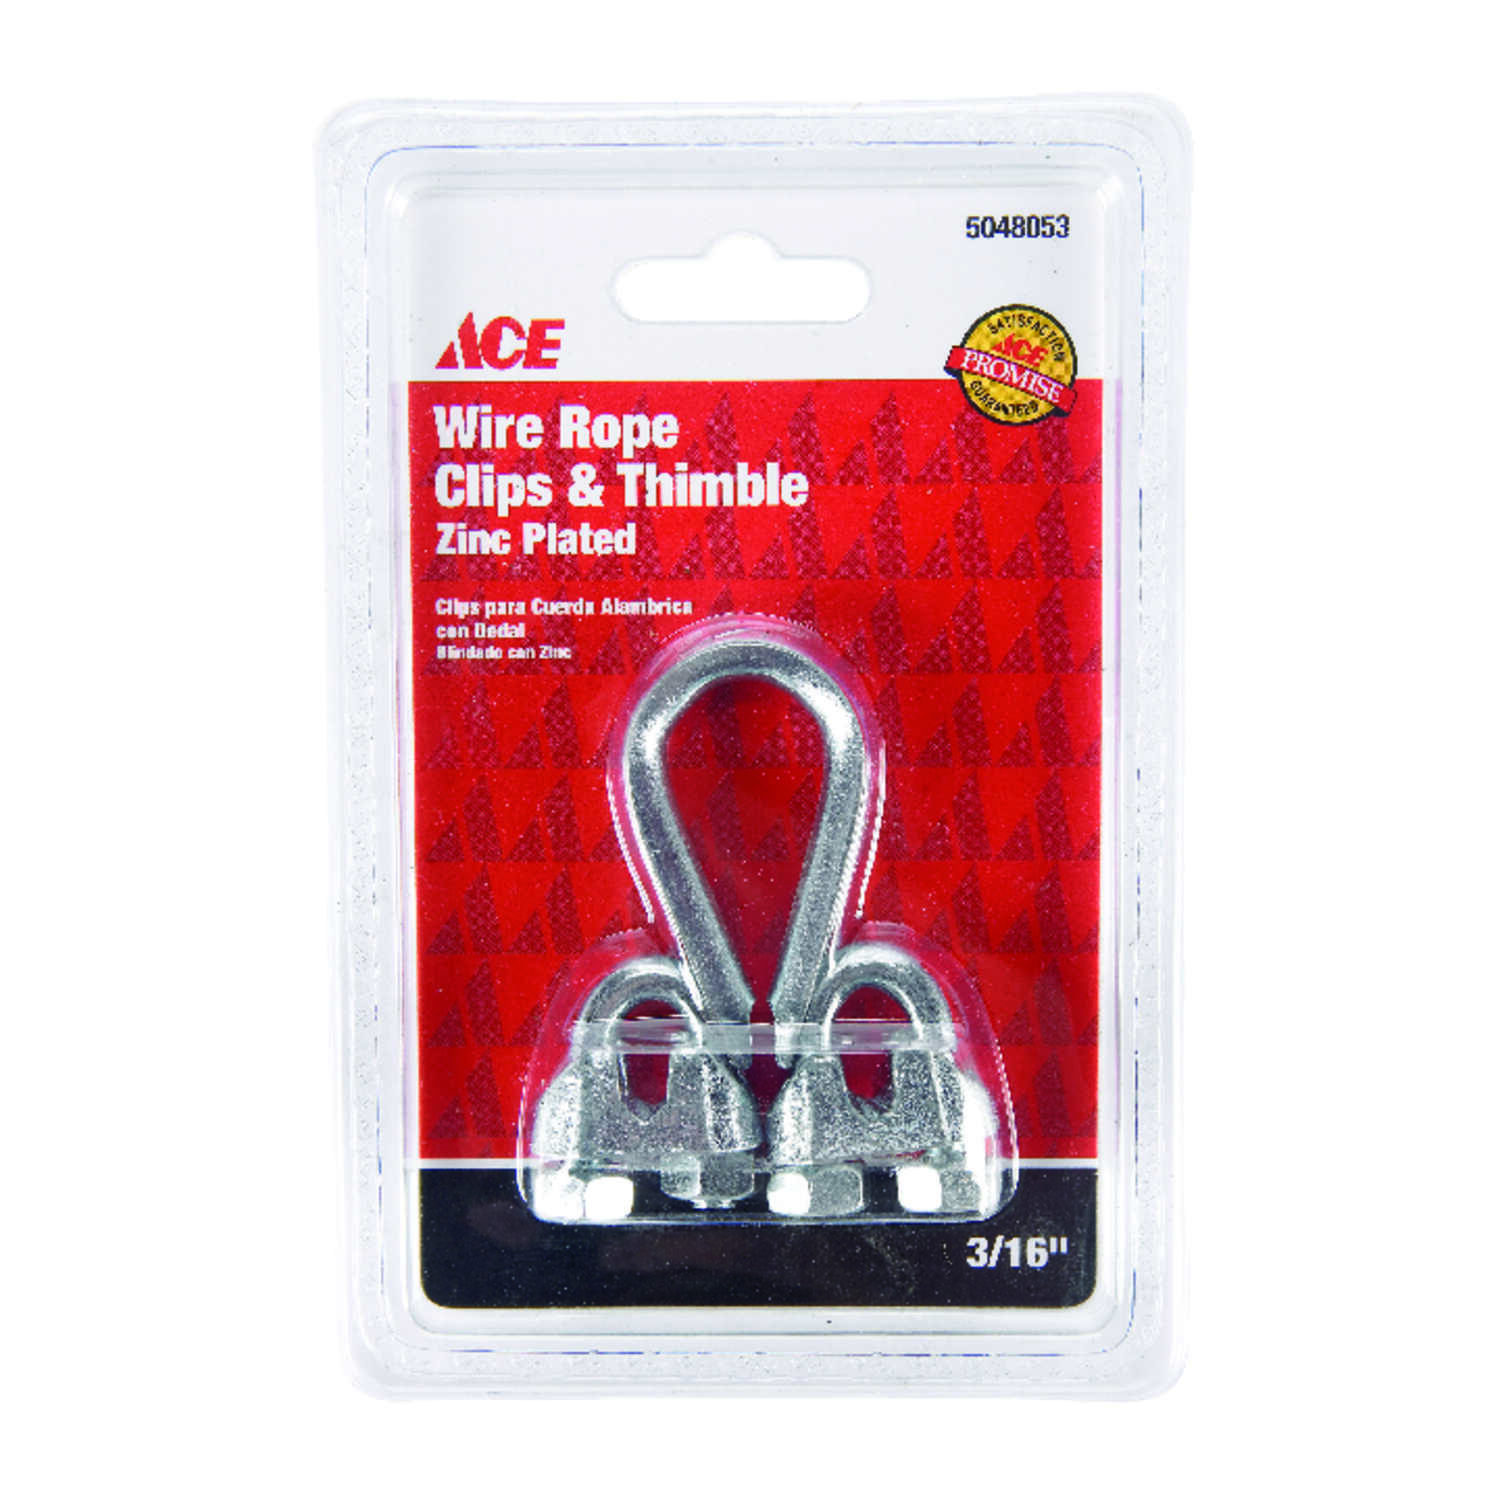 Ace  Galvanized  Steel  Wire Rope Clips and Thimble